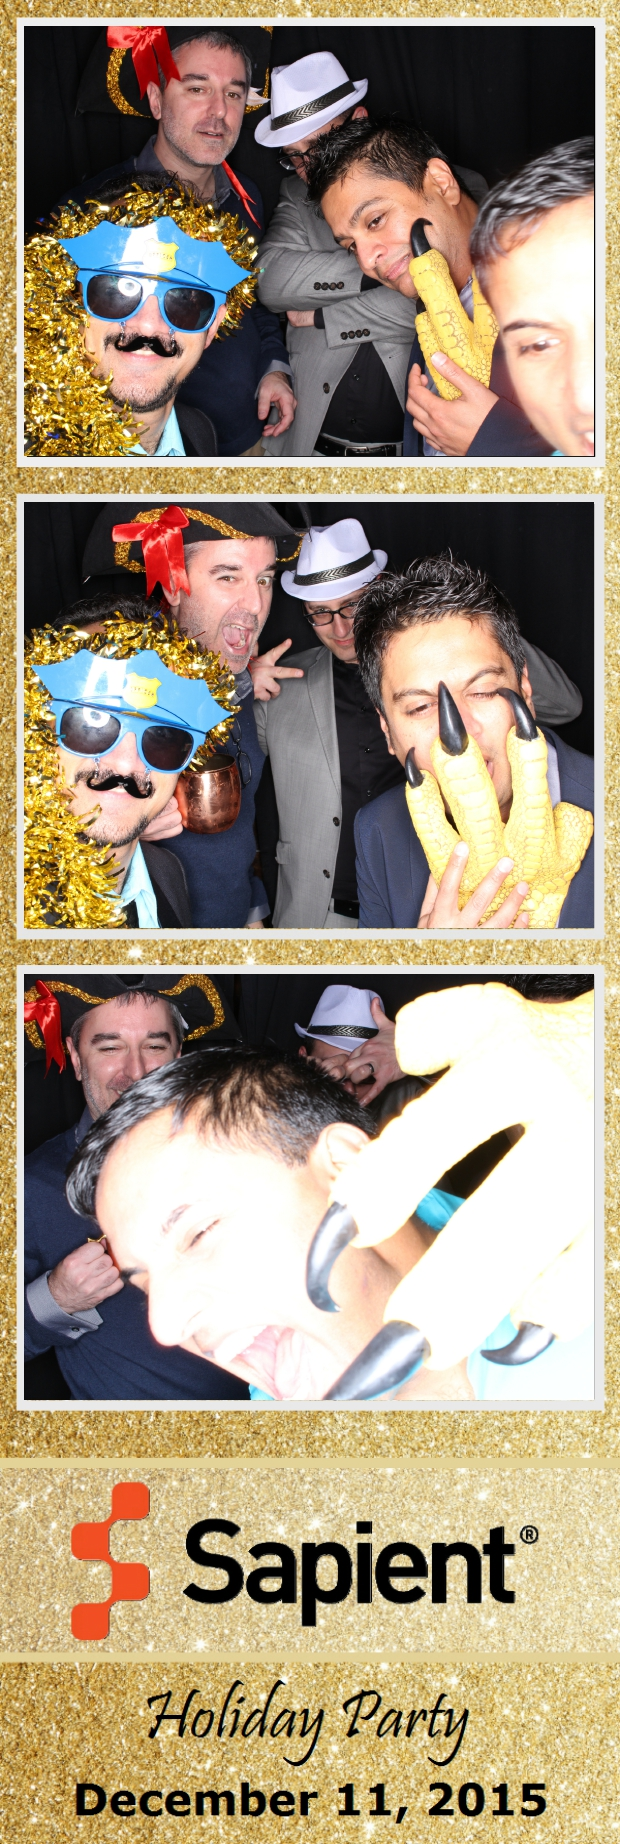 Guest House Events Photo Booth Sapient Holiday Party (93).jpg